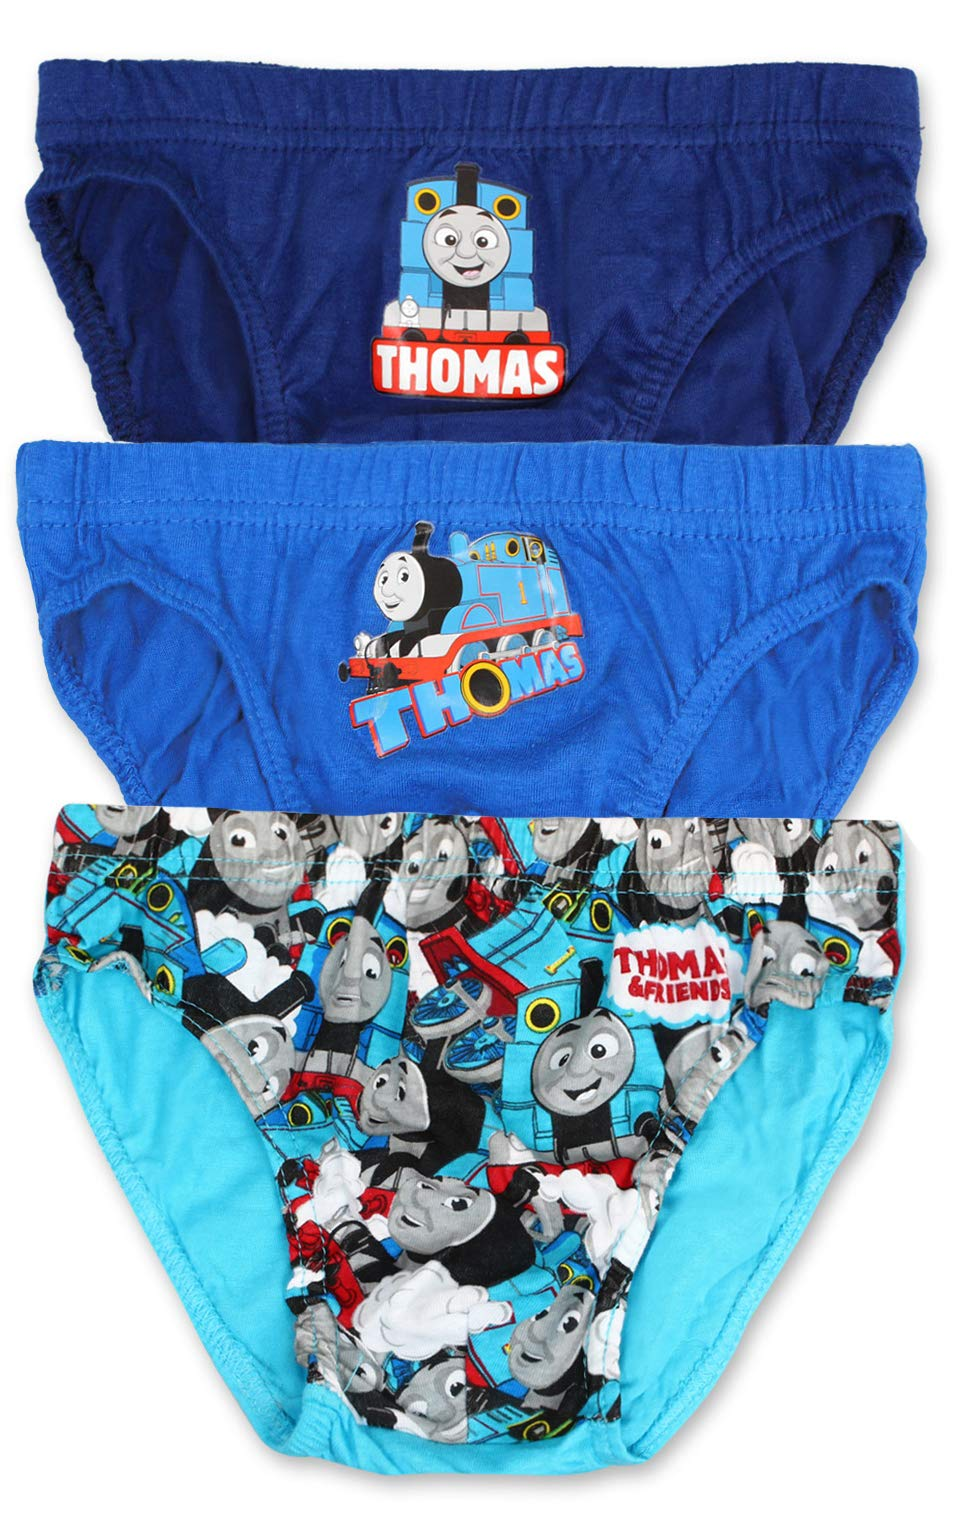 Pack Of 5 Briefs 100/% Cotton 18 Months 6 Years Thomas /& Friends Boys Pants